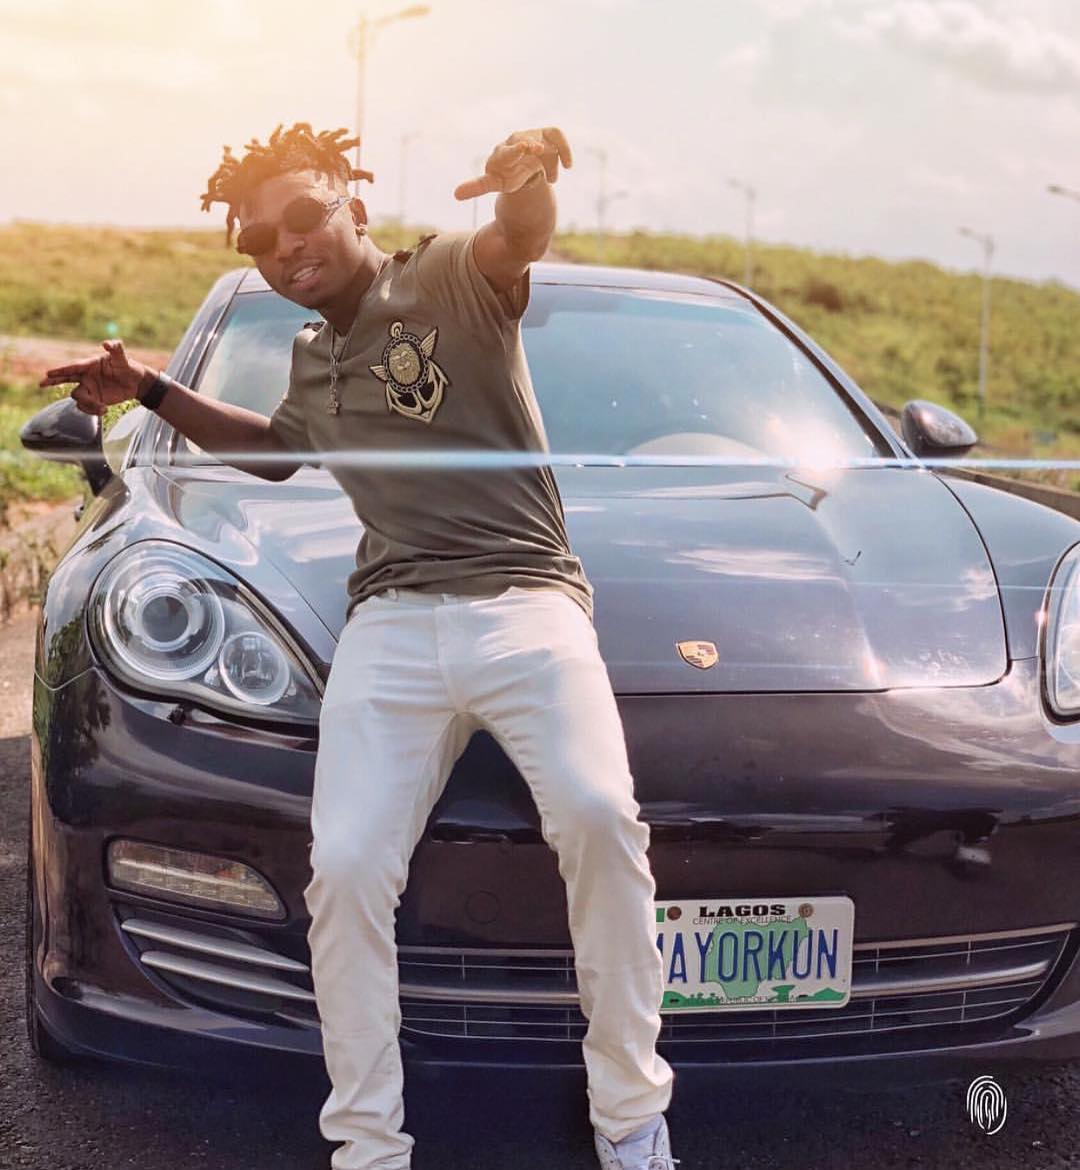 DMW's Mayorkun shows off his New Porsche - Photo - Image ~ Naijabang